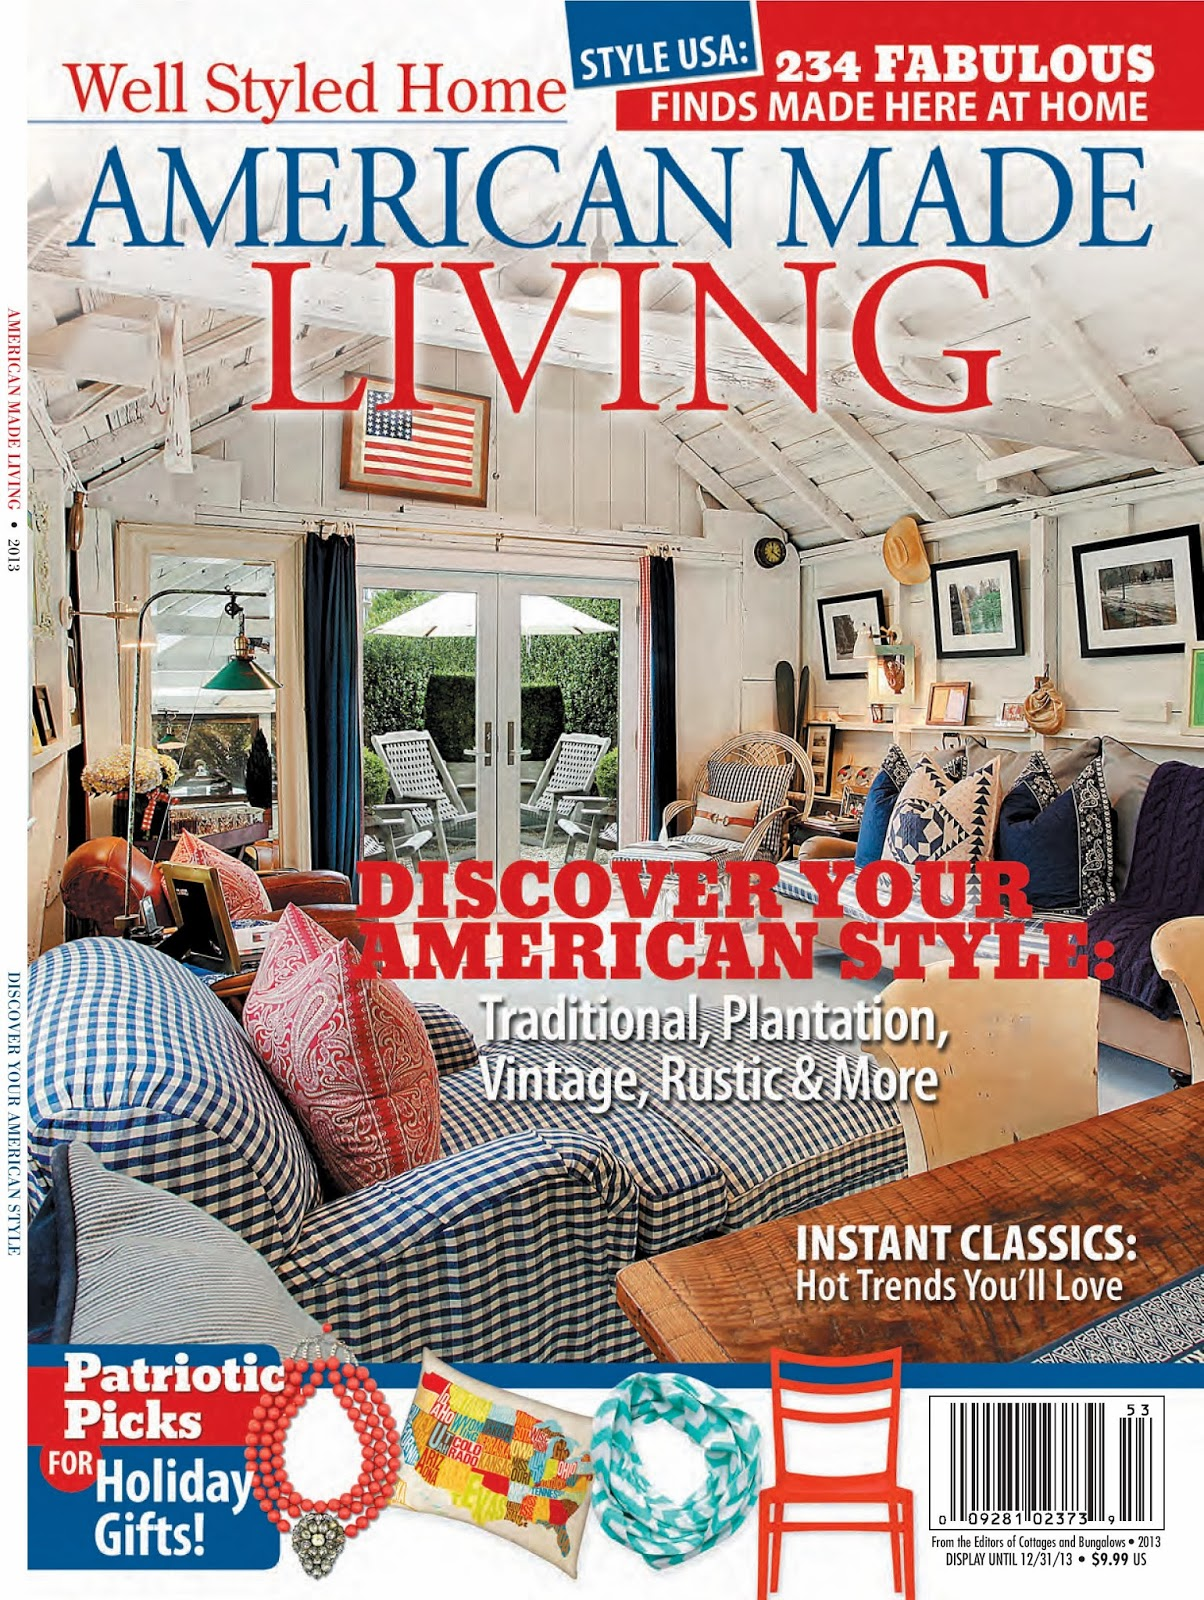 To you well styled homes american made living magazine issue well styled homes american made living magazine issue features animal blueprint companys american mutt print malvernweather Images